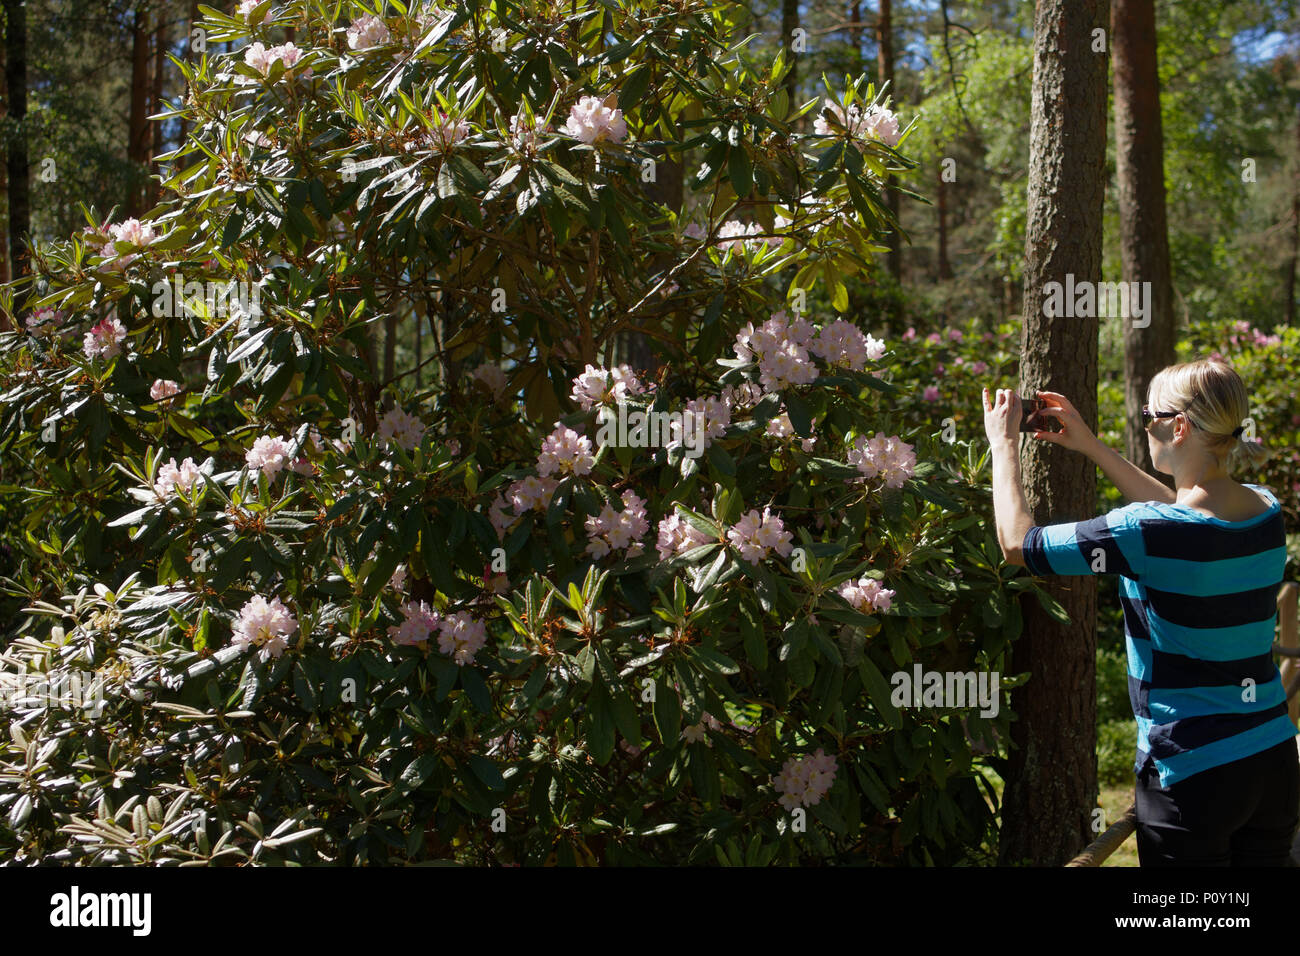 Helsinki, Finland, 10th June, 2018. People walking and make photos in Haaga Rhododendron Park. The park is created by Helsinki university as the experimental site Credit: StockphotoVideo/Alamy Live News - Stock Image